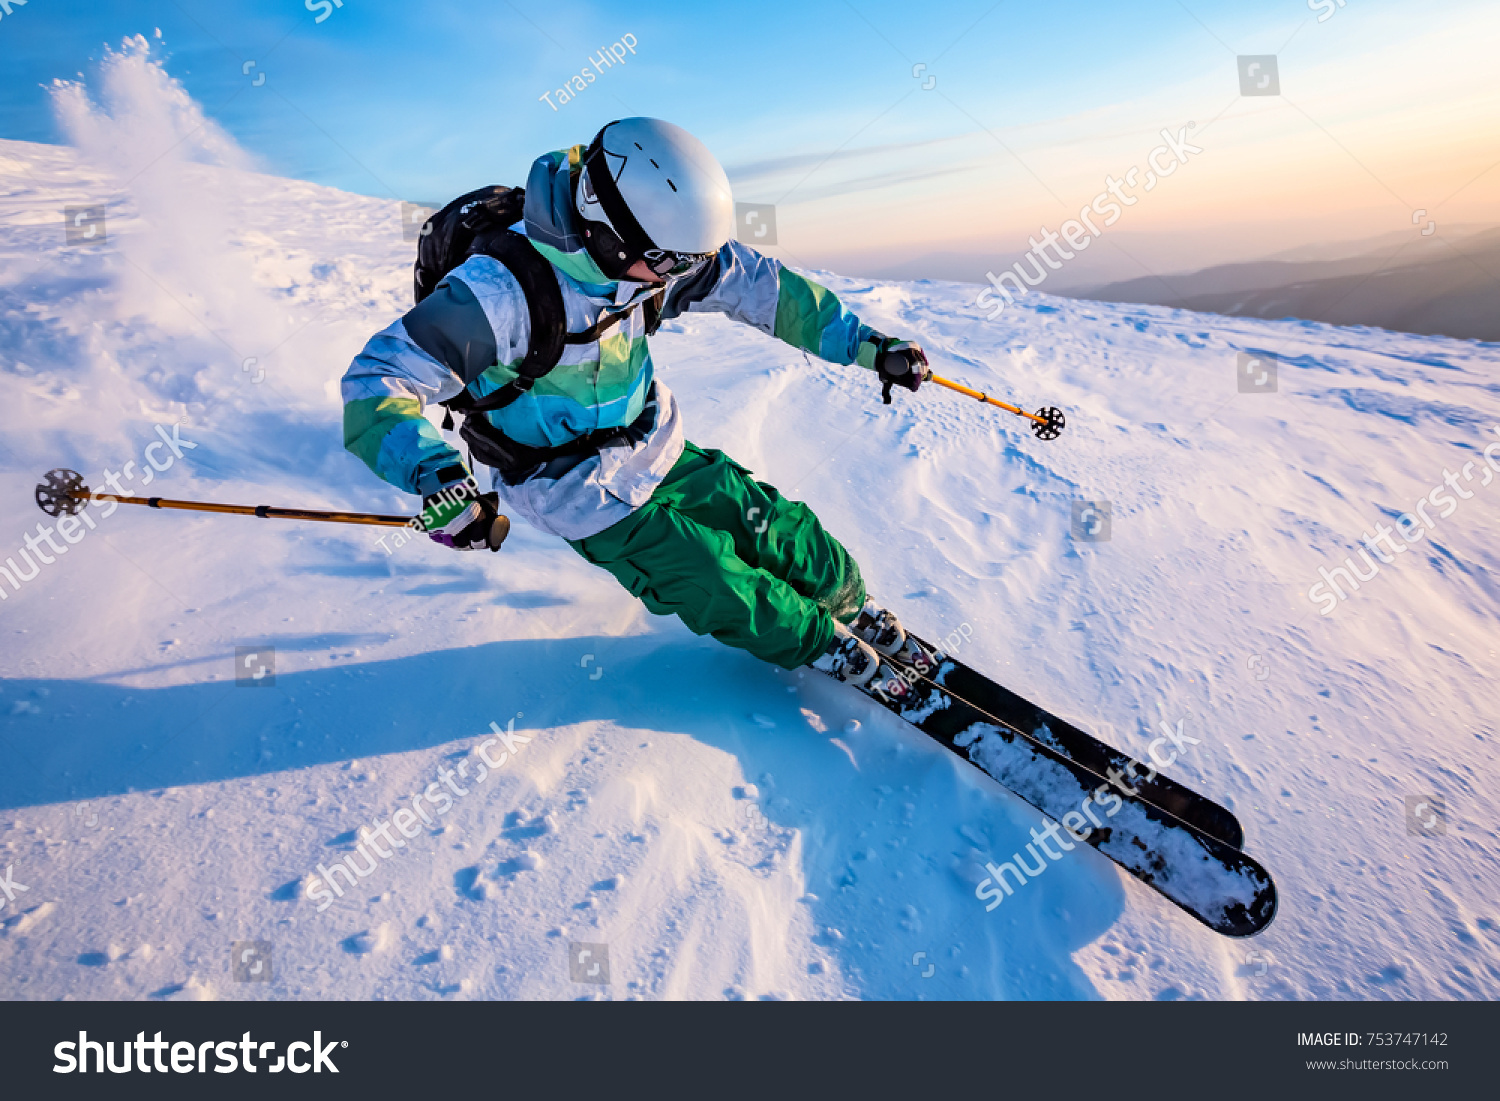 good skiing in the snowy mountains, Carpathians, Ukraine, nice winter day #753747142